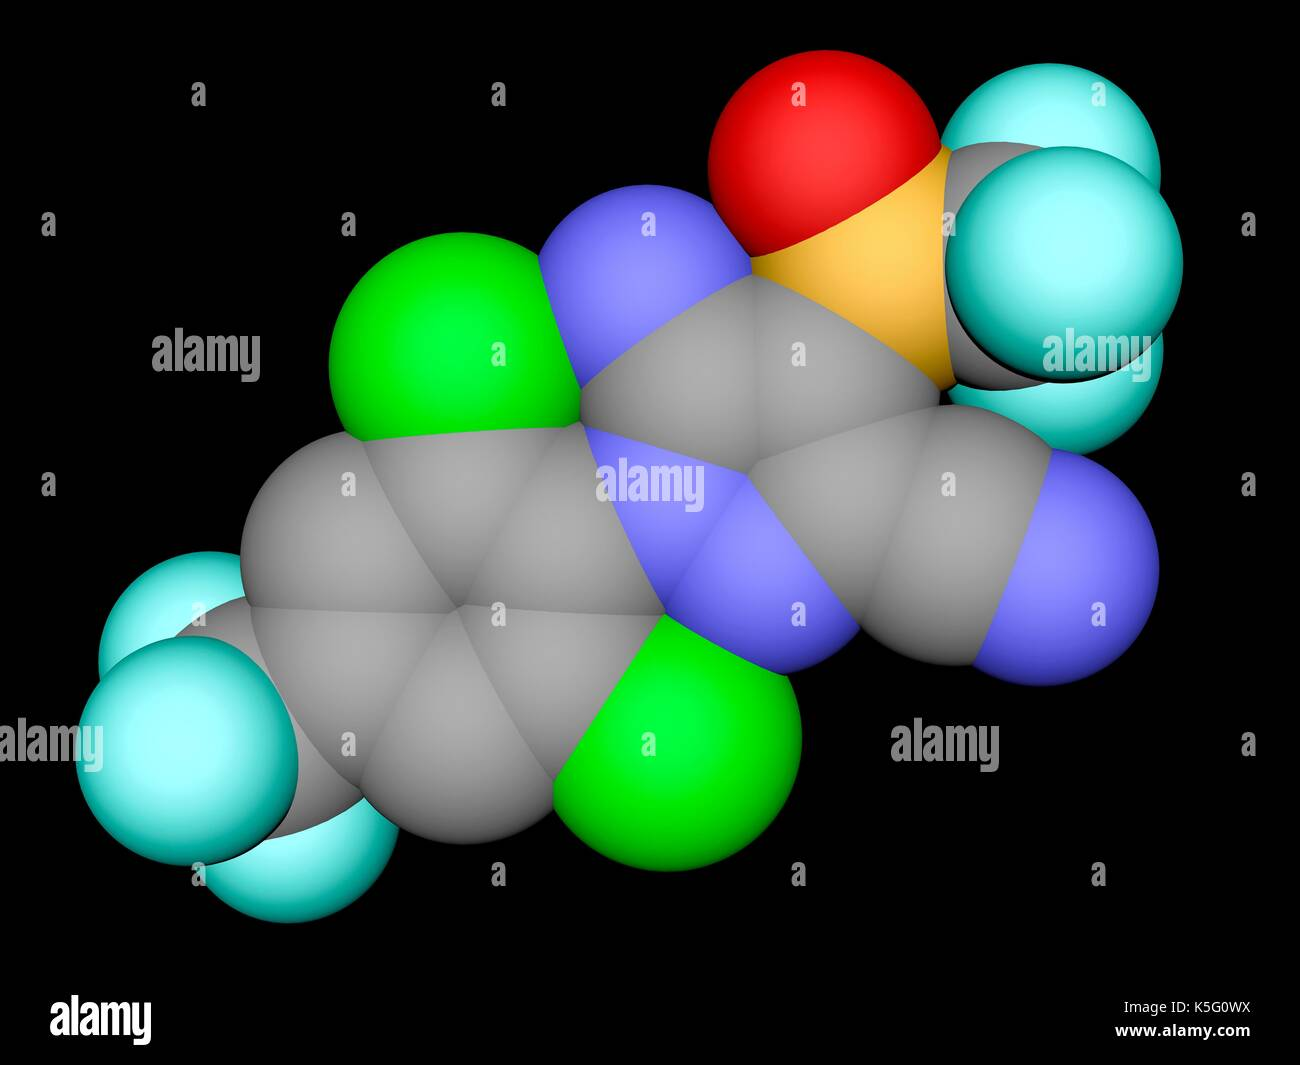 Fipronil insecticide, space filling molecular model. Atoms are represented as spheres with colour coding: carbon (grey), oxygen (red), nitrogen (blue), chlorine (green), fluorine (cyan), sulphur (yellow). Hydrogens are hidden. - Stock Image